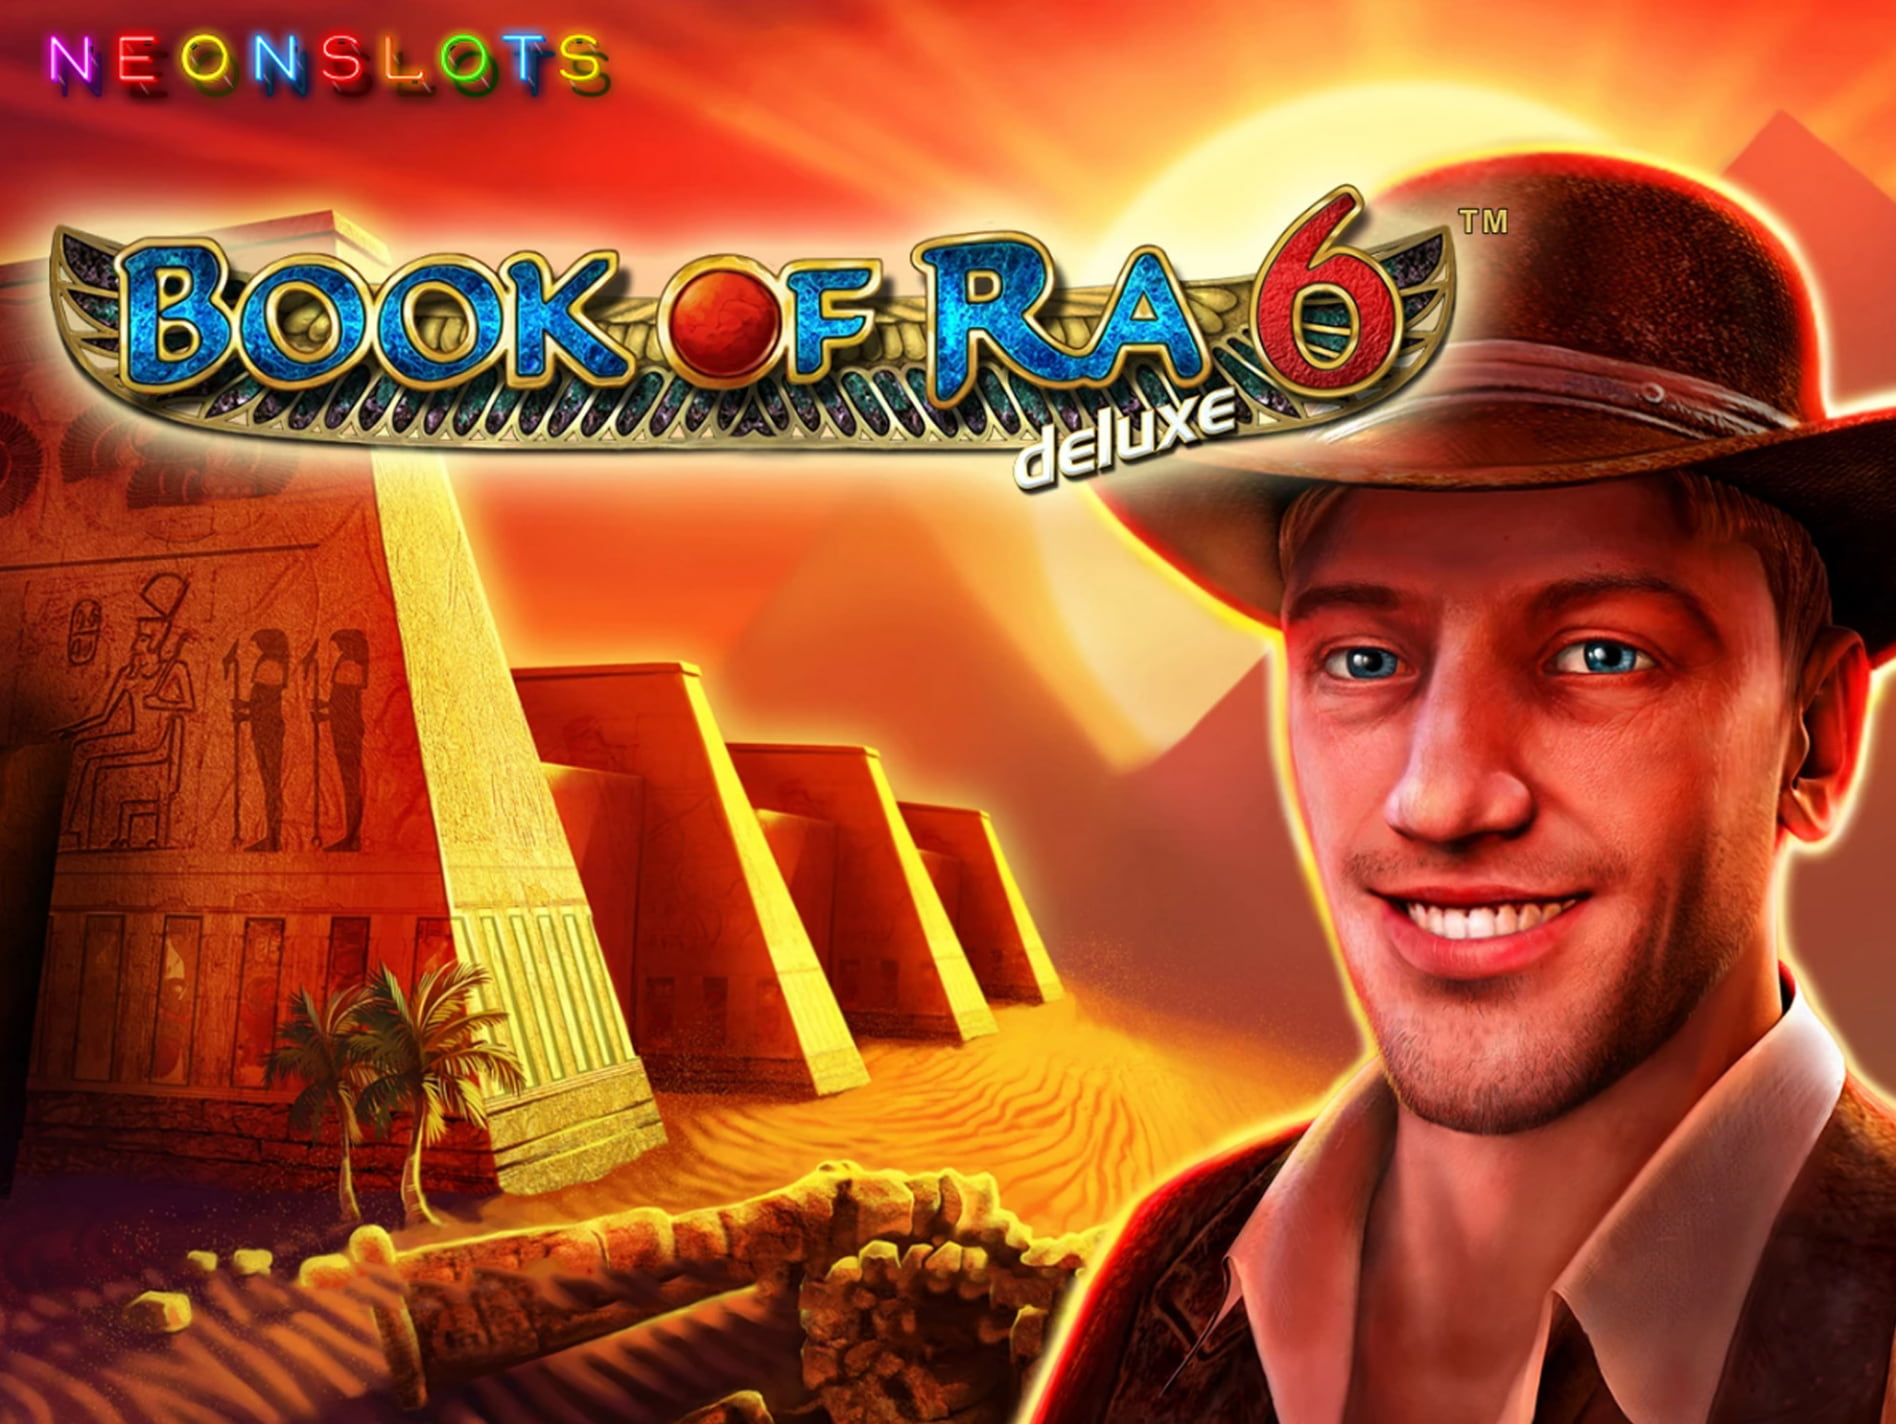 Juegos book of ra gratis online en Chile-816167